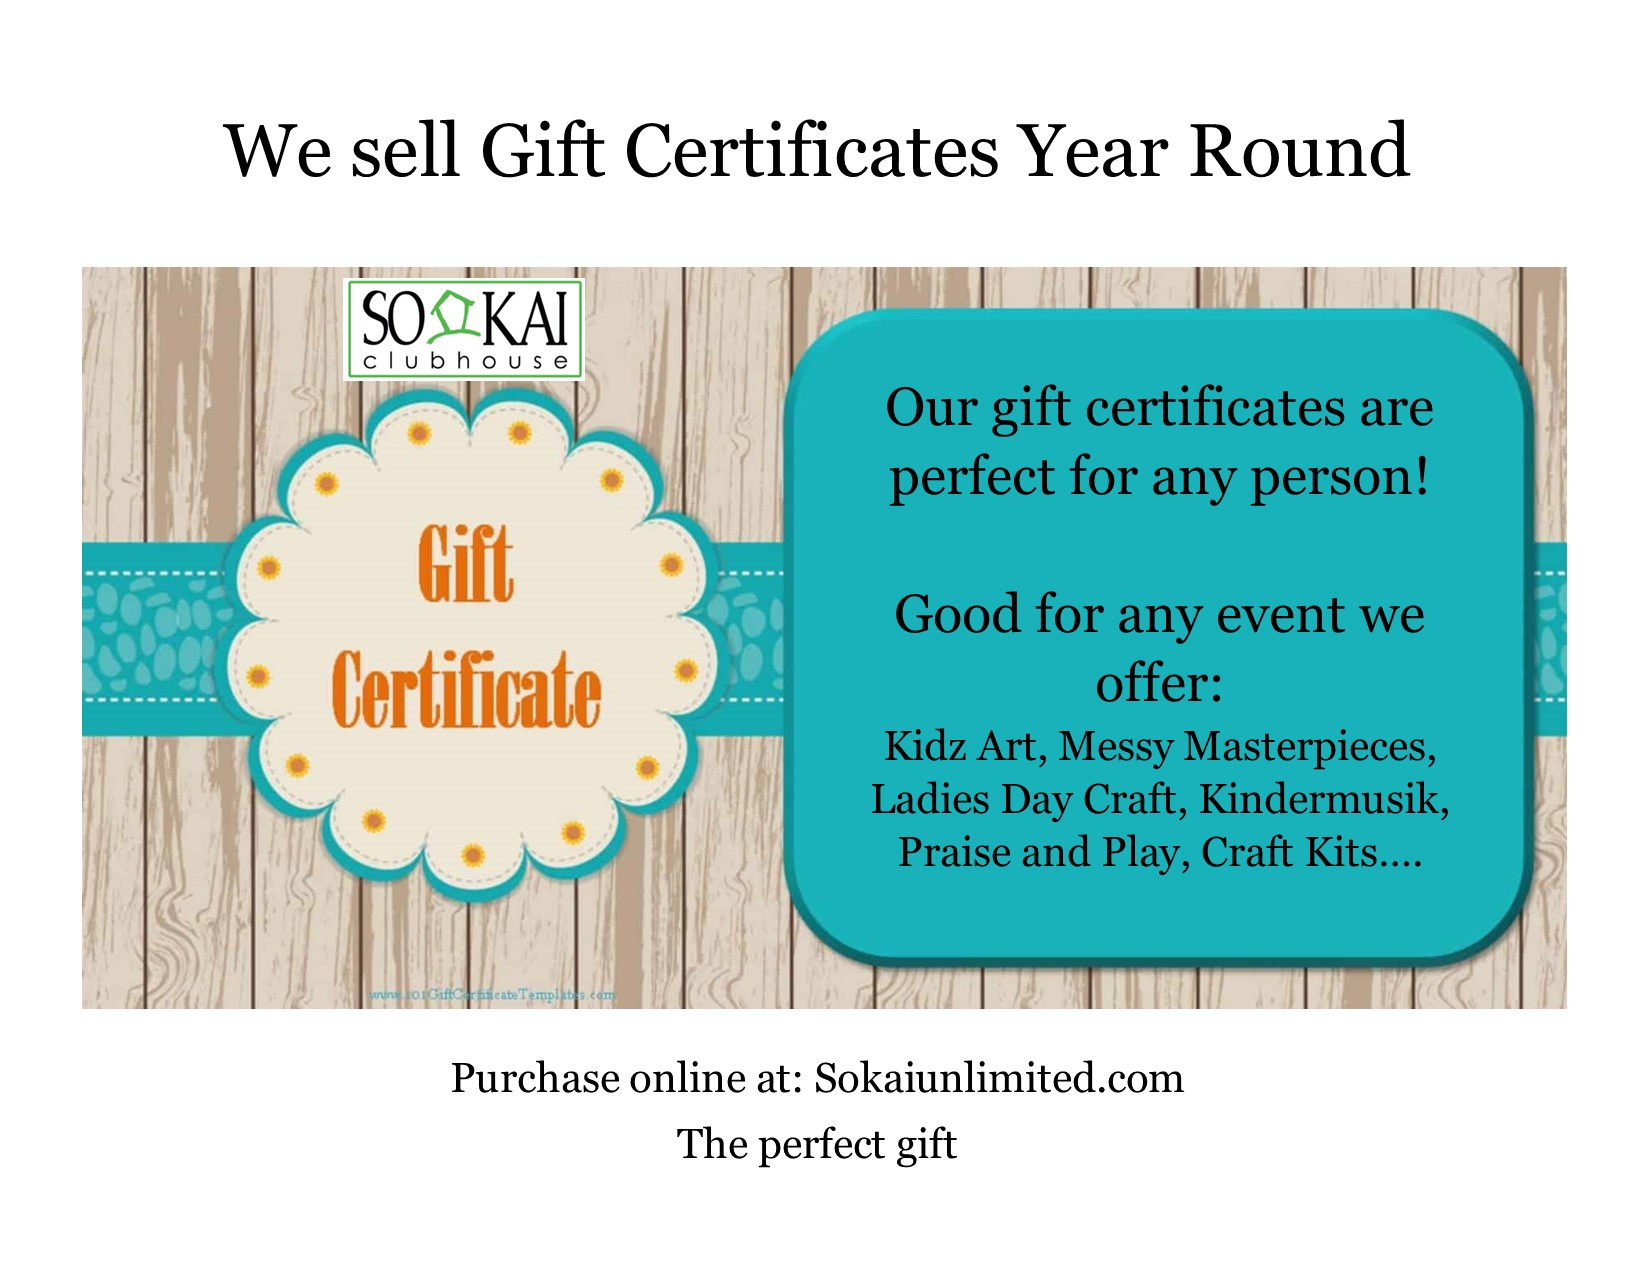 Gift Certificates anytime